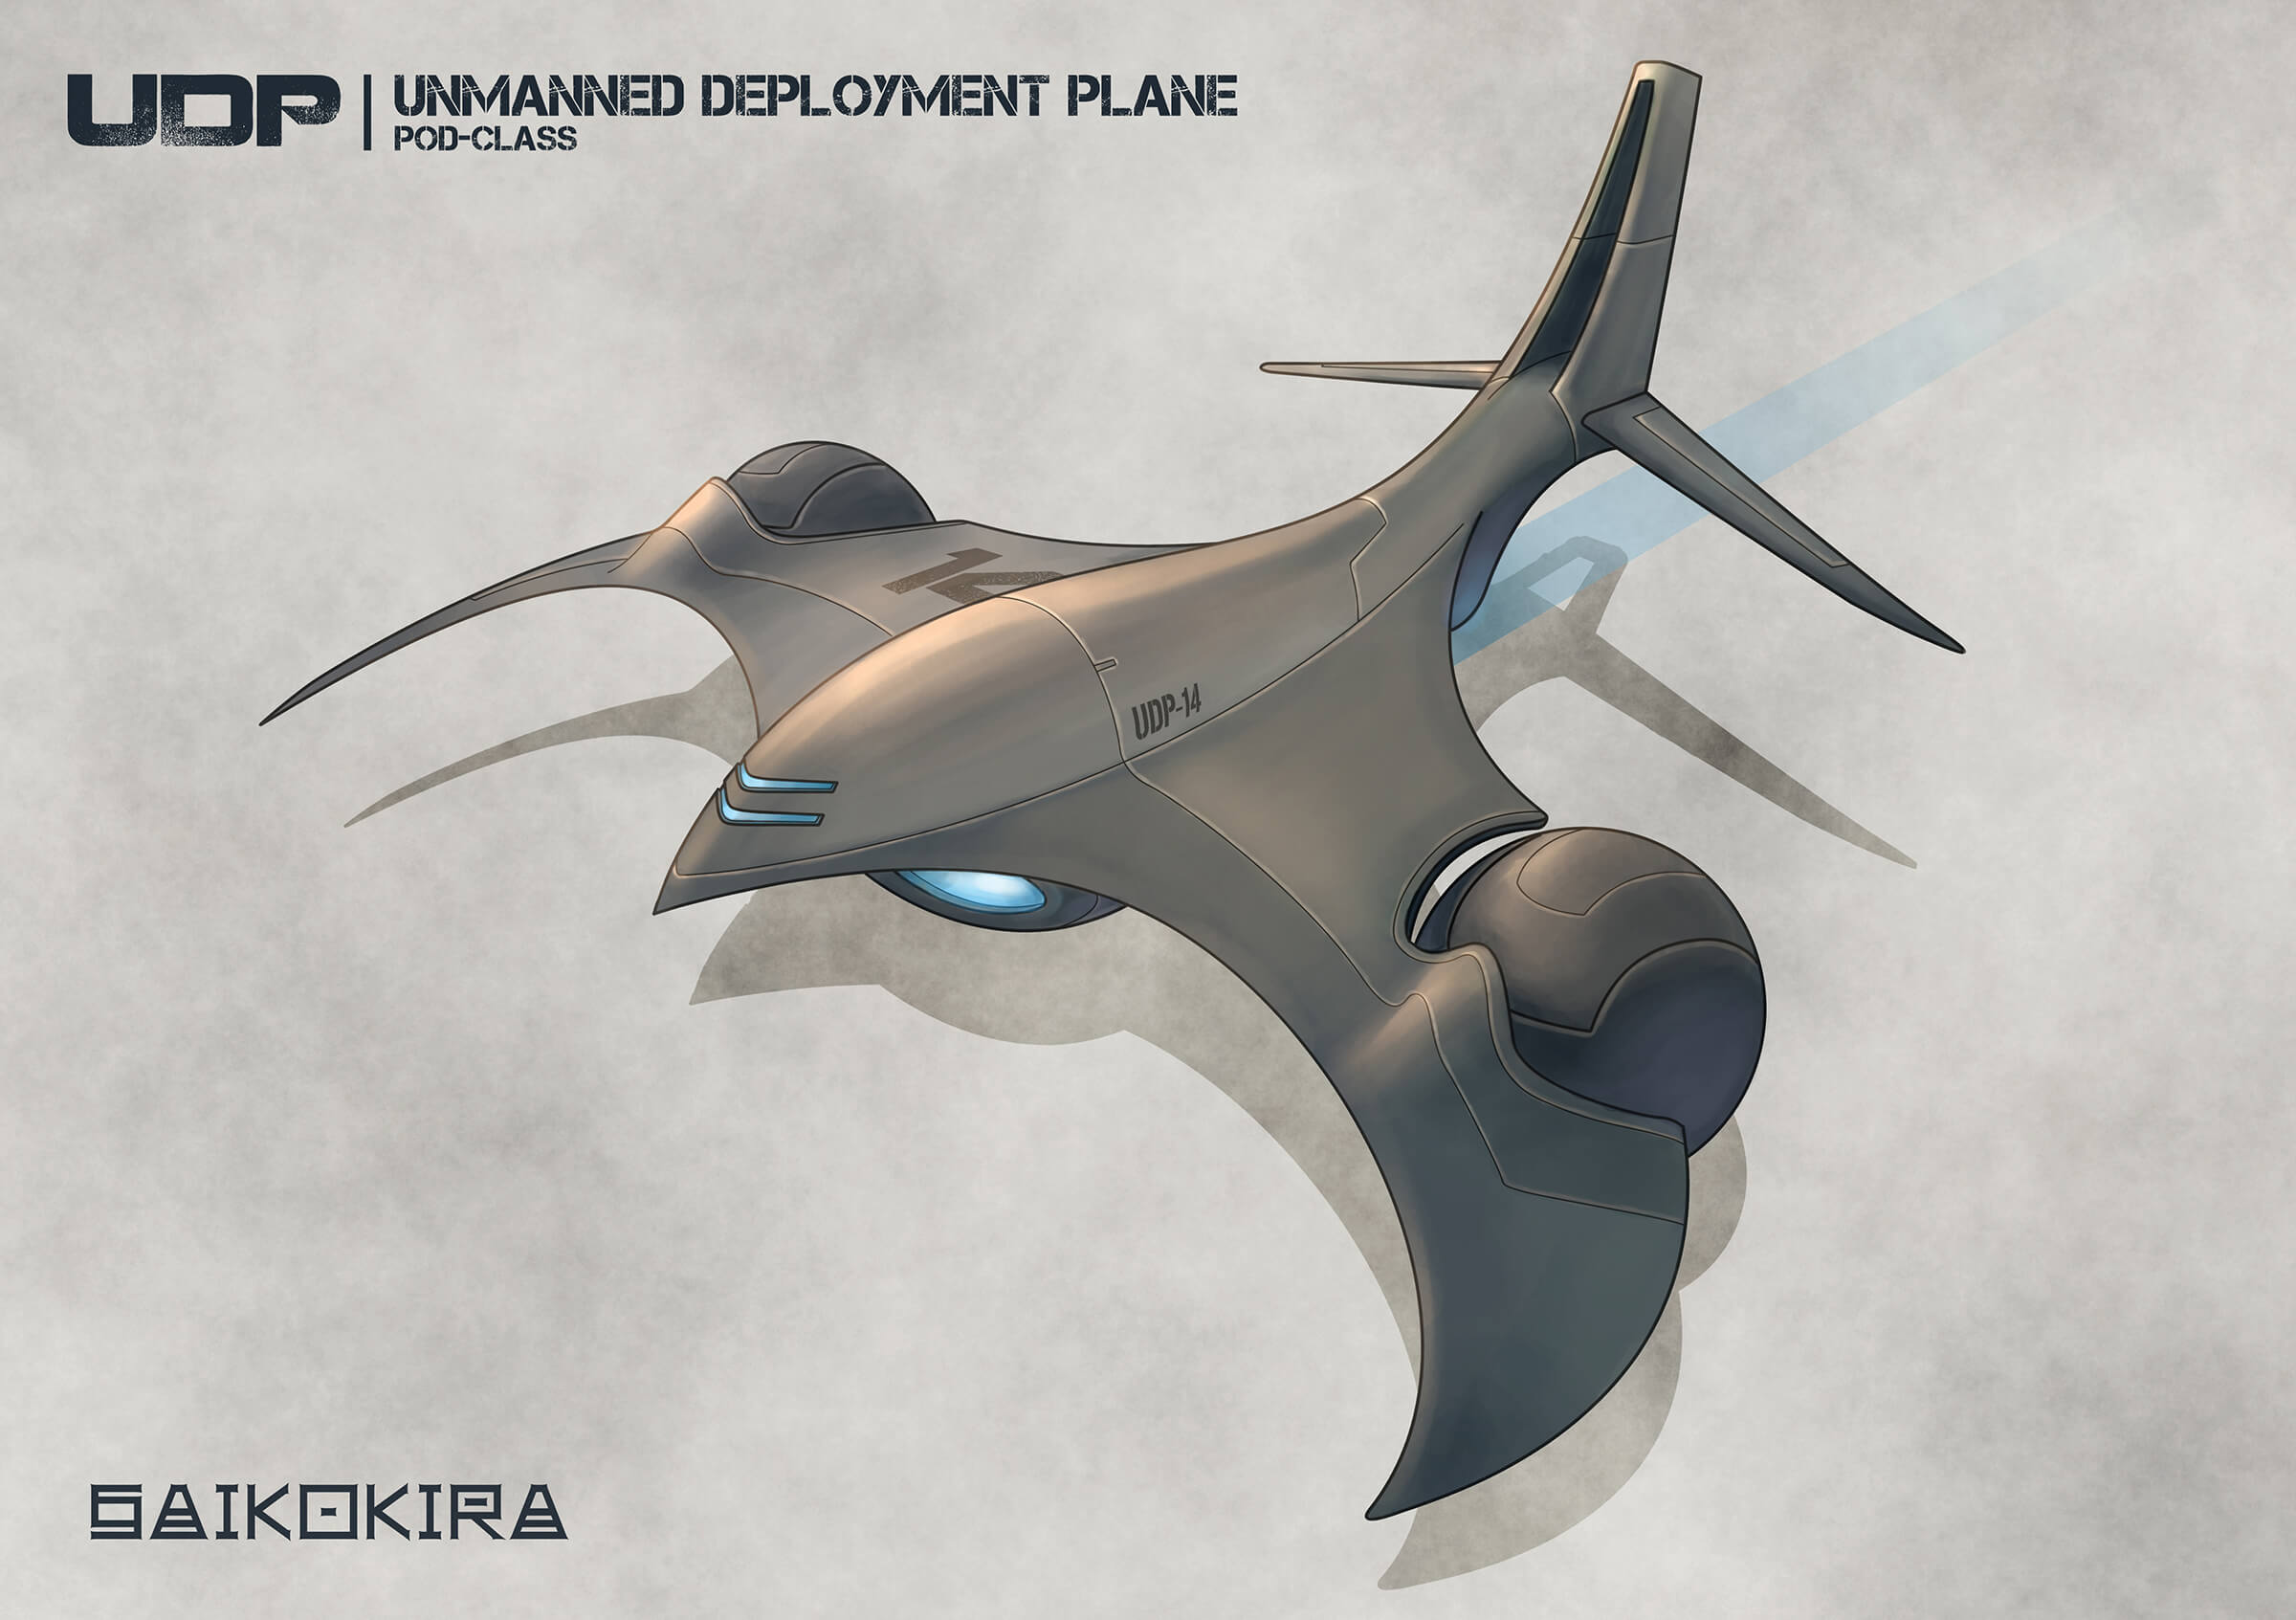 Sketch of a futuristic gray-metal, jet-powered flying vehicle, including spherical pods attached to its swept wings.